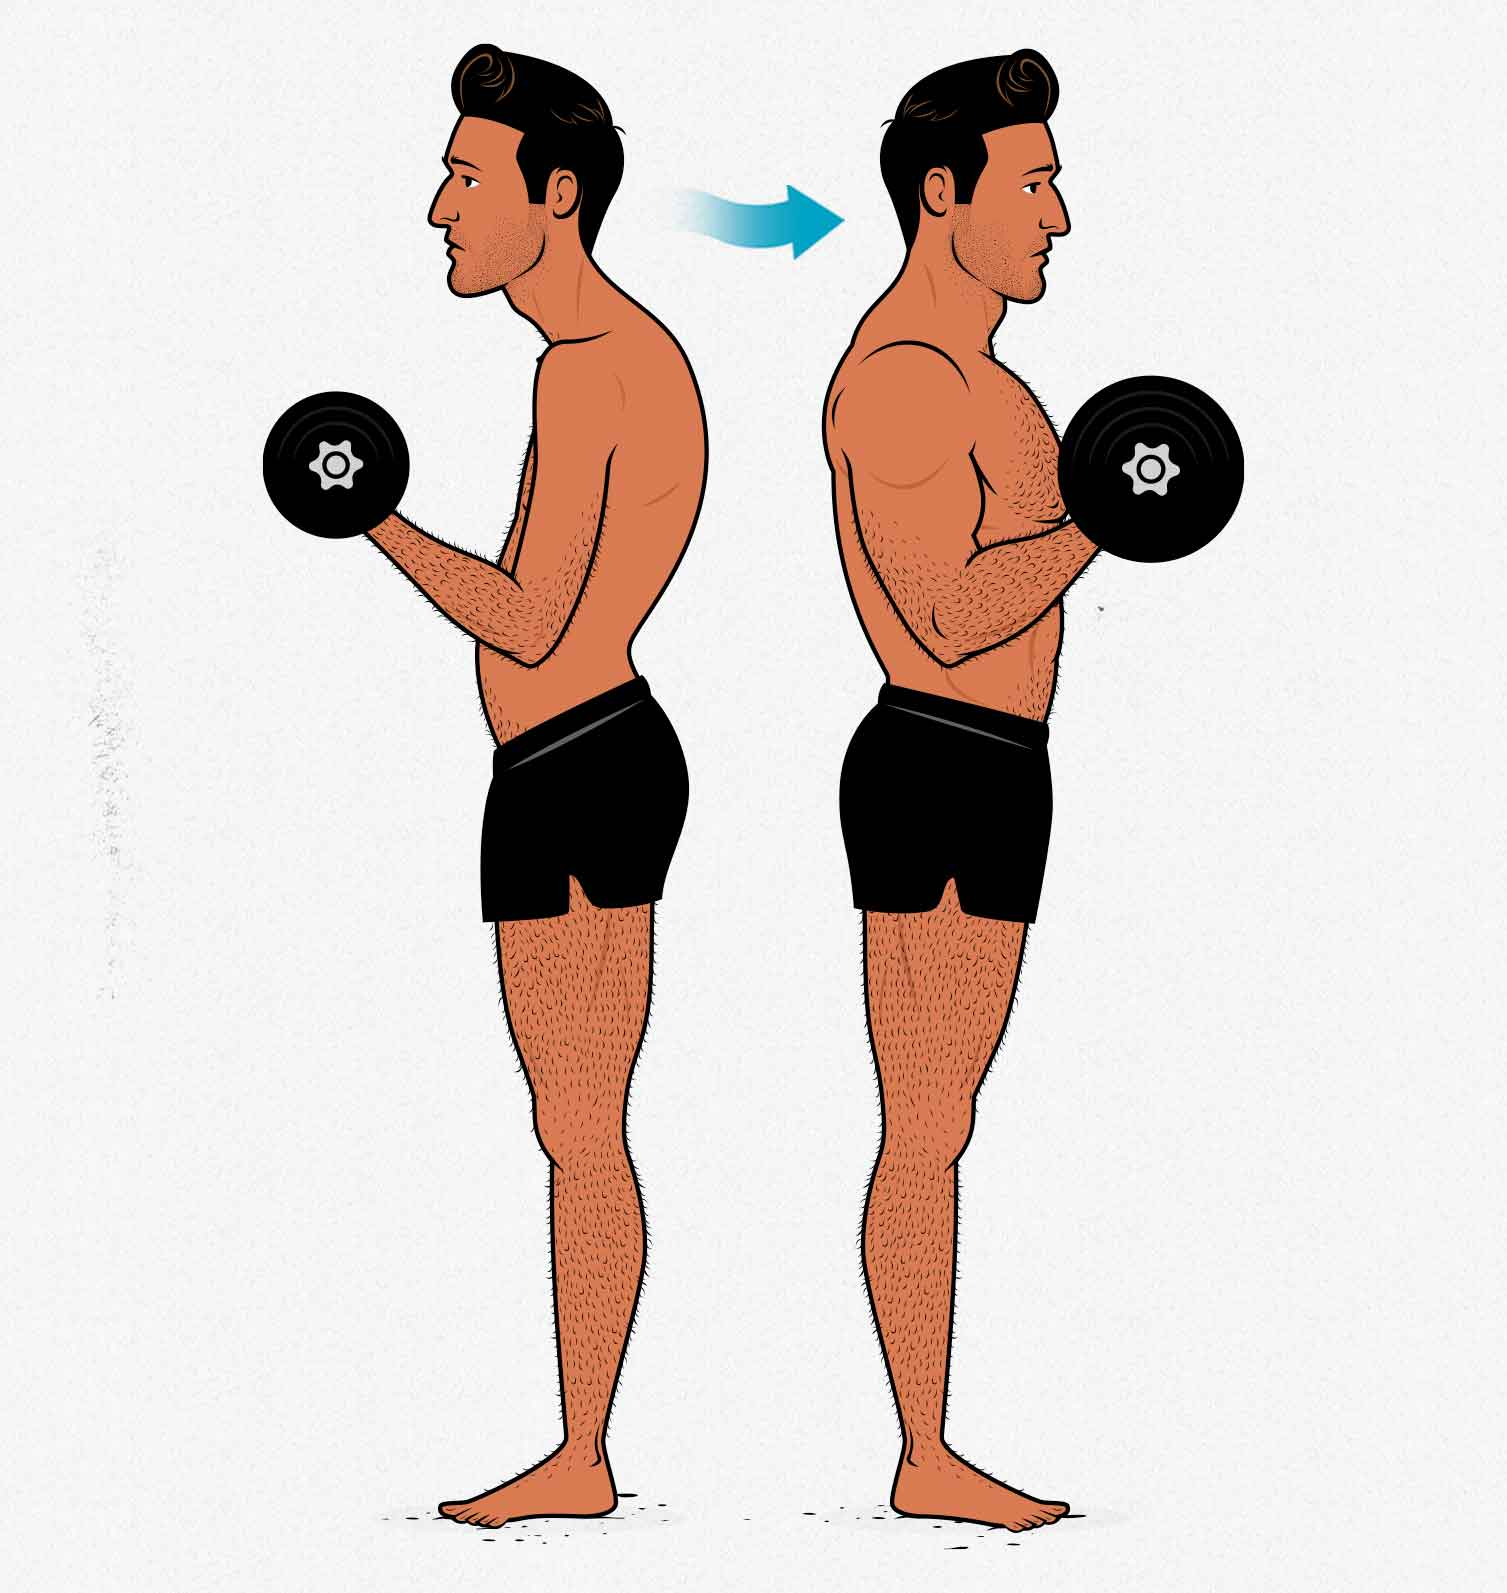 Illustration of a skinny guy's results building bigger arms by bodybuilding